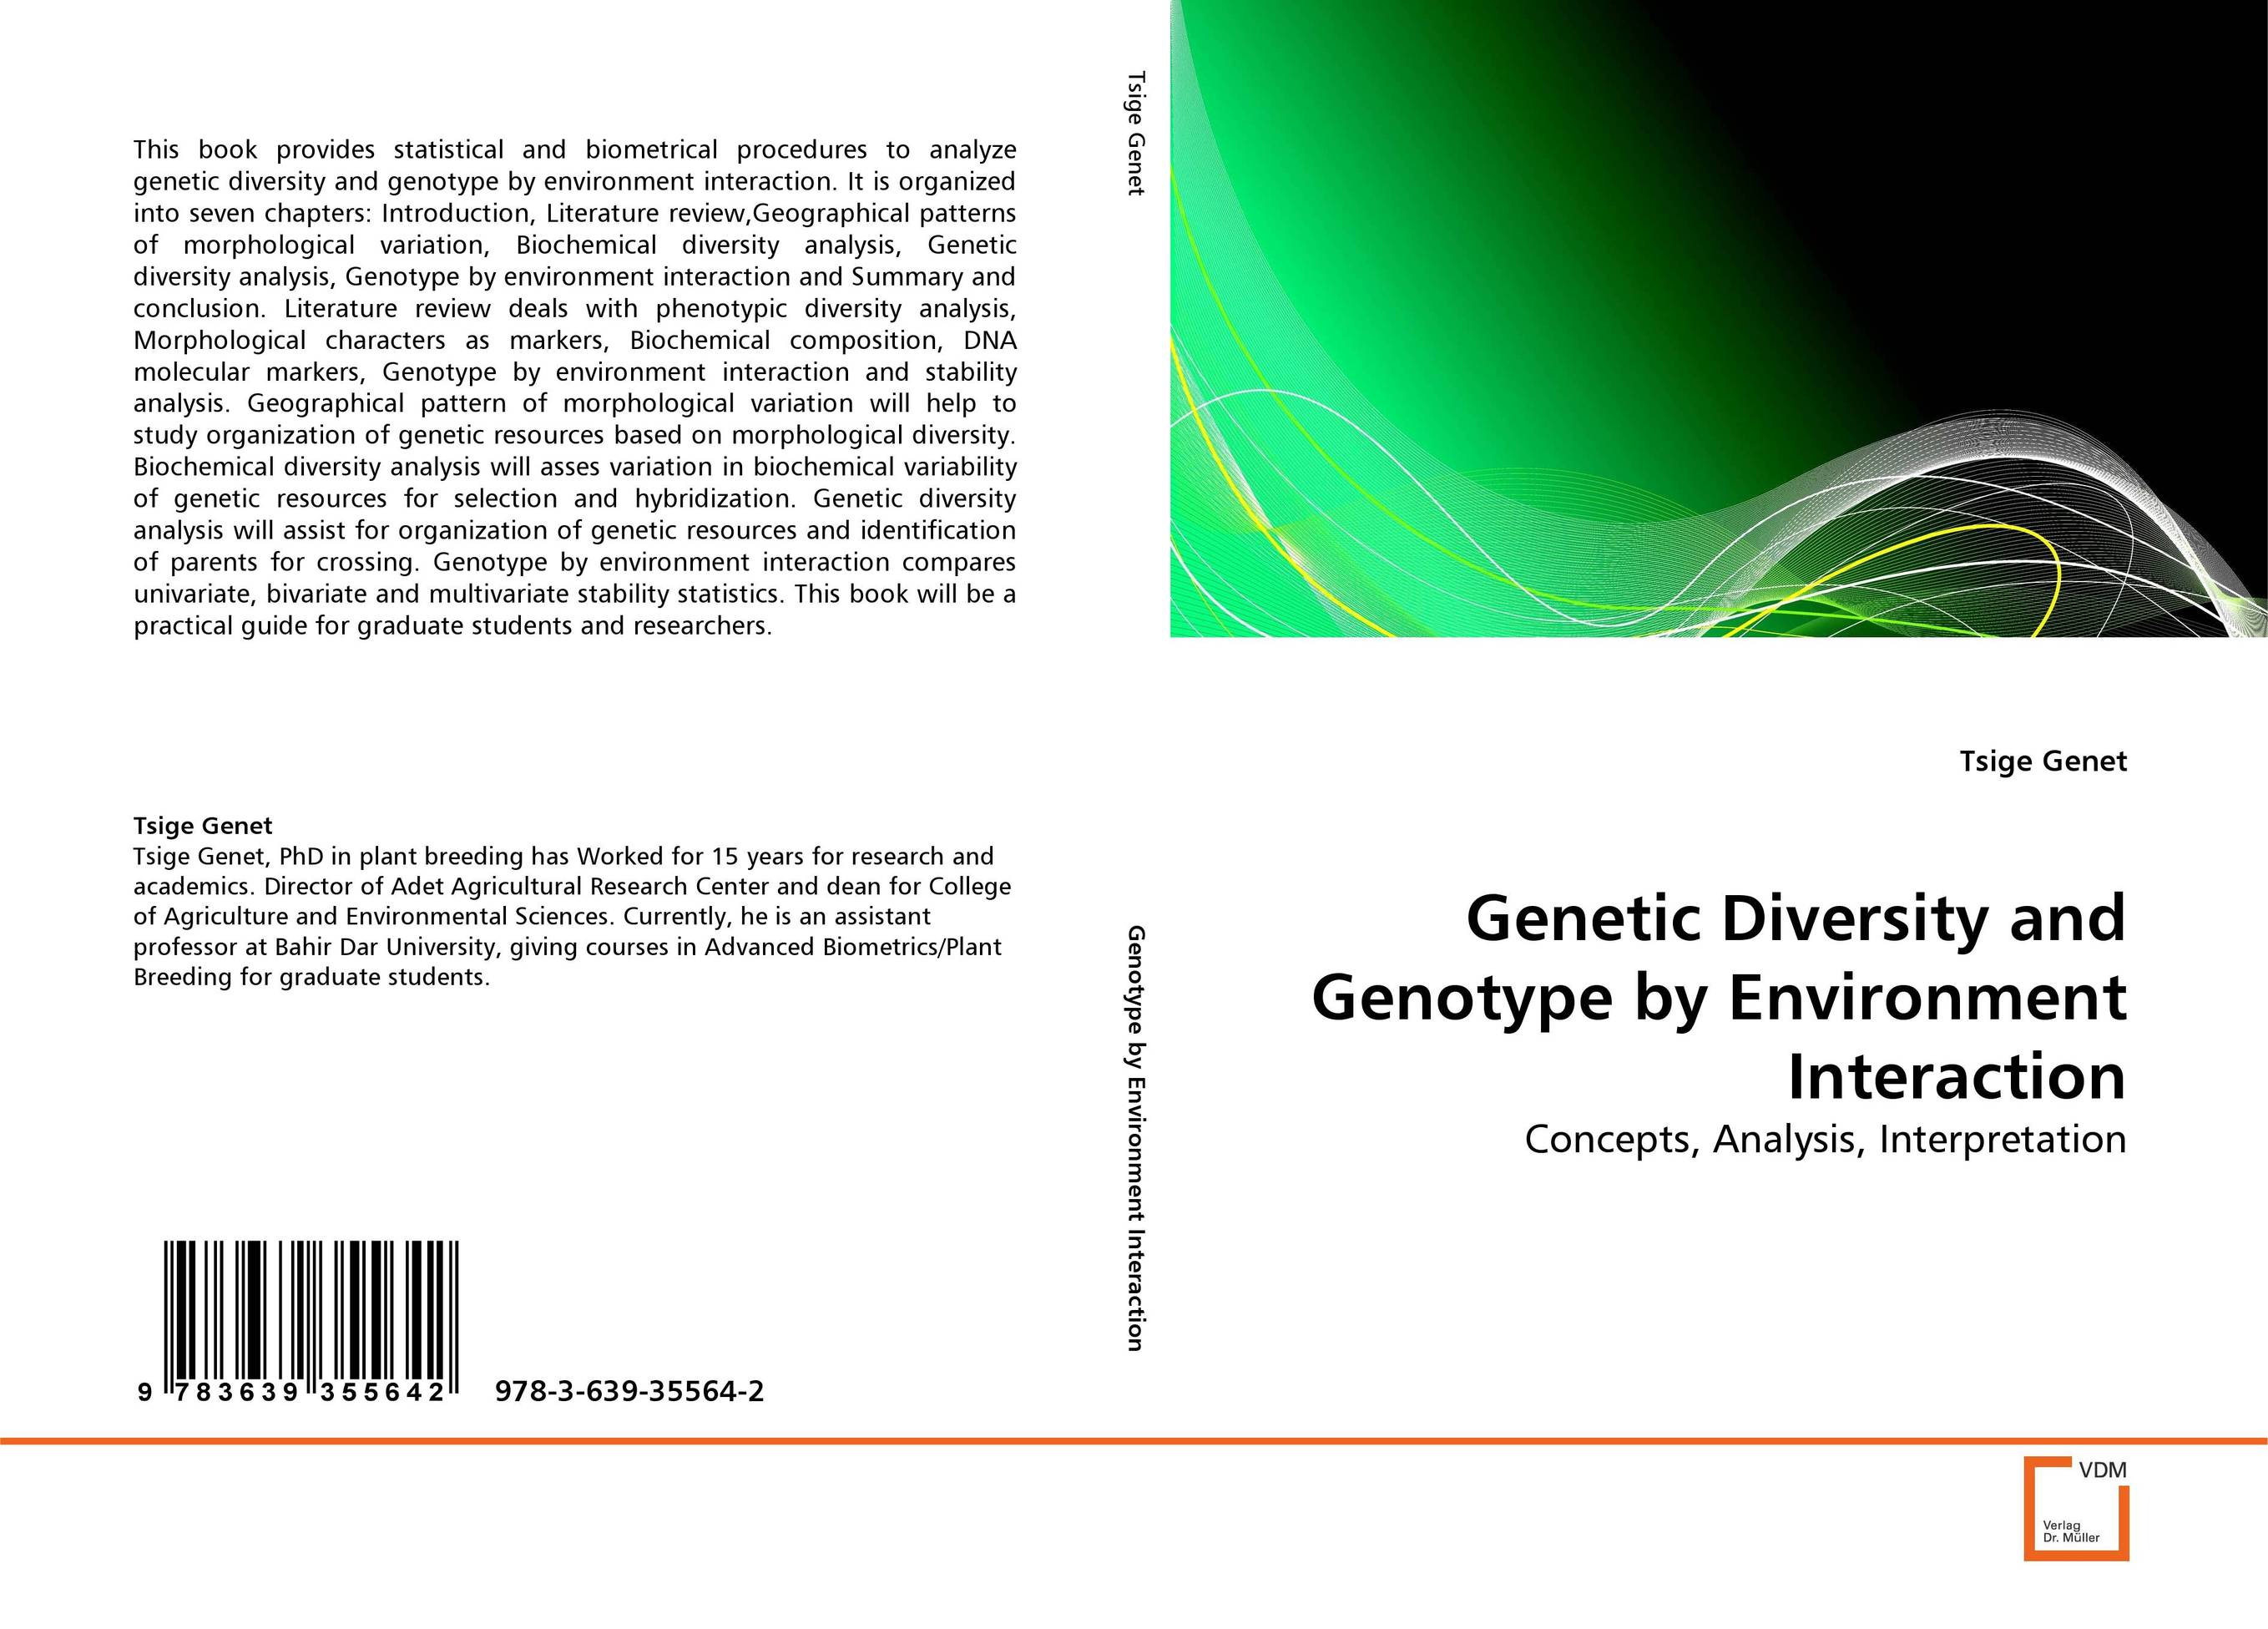 Genetic Diversity and Genotype by Environment Interaction